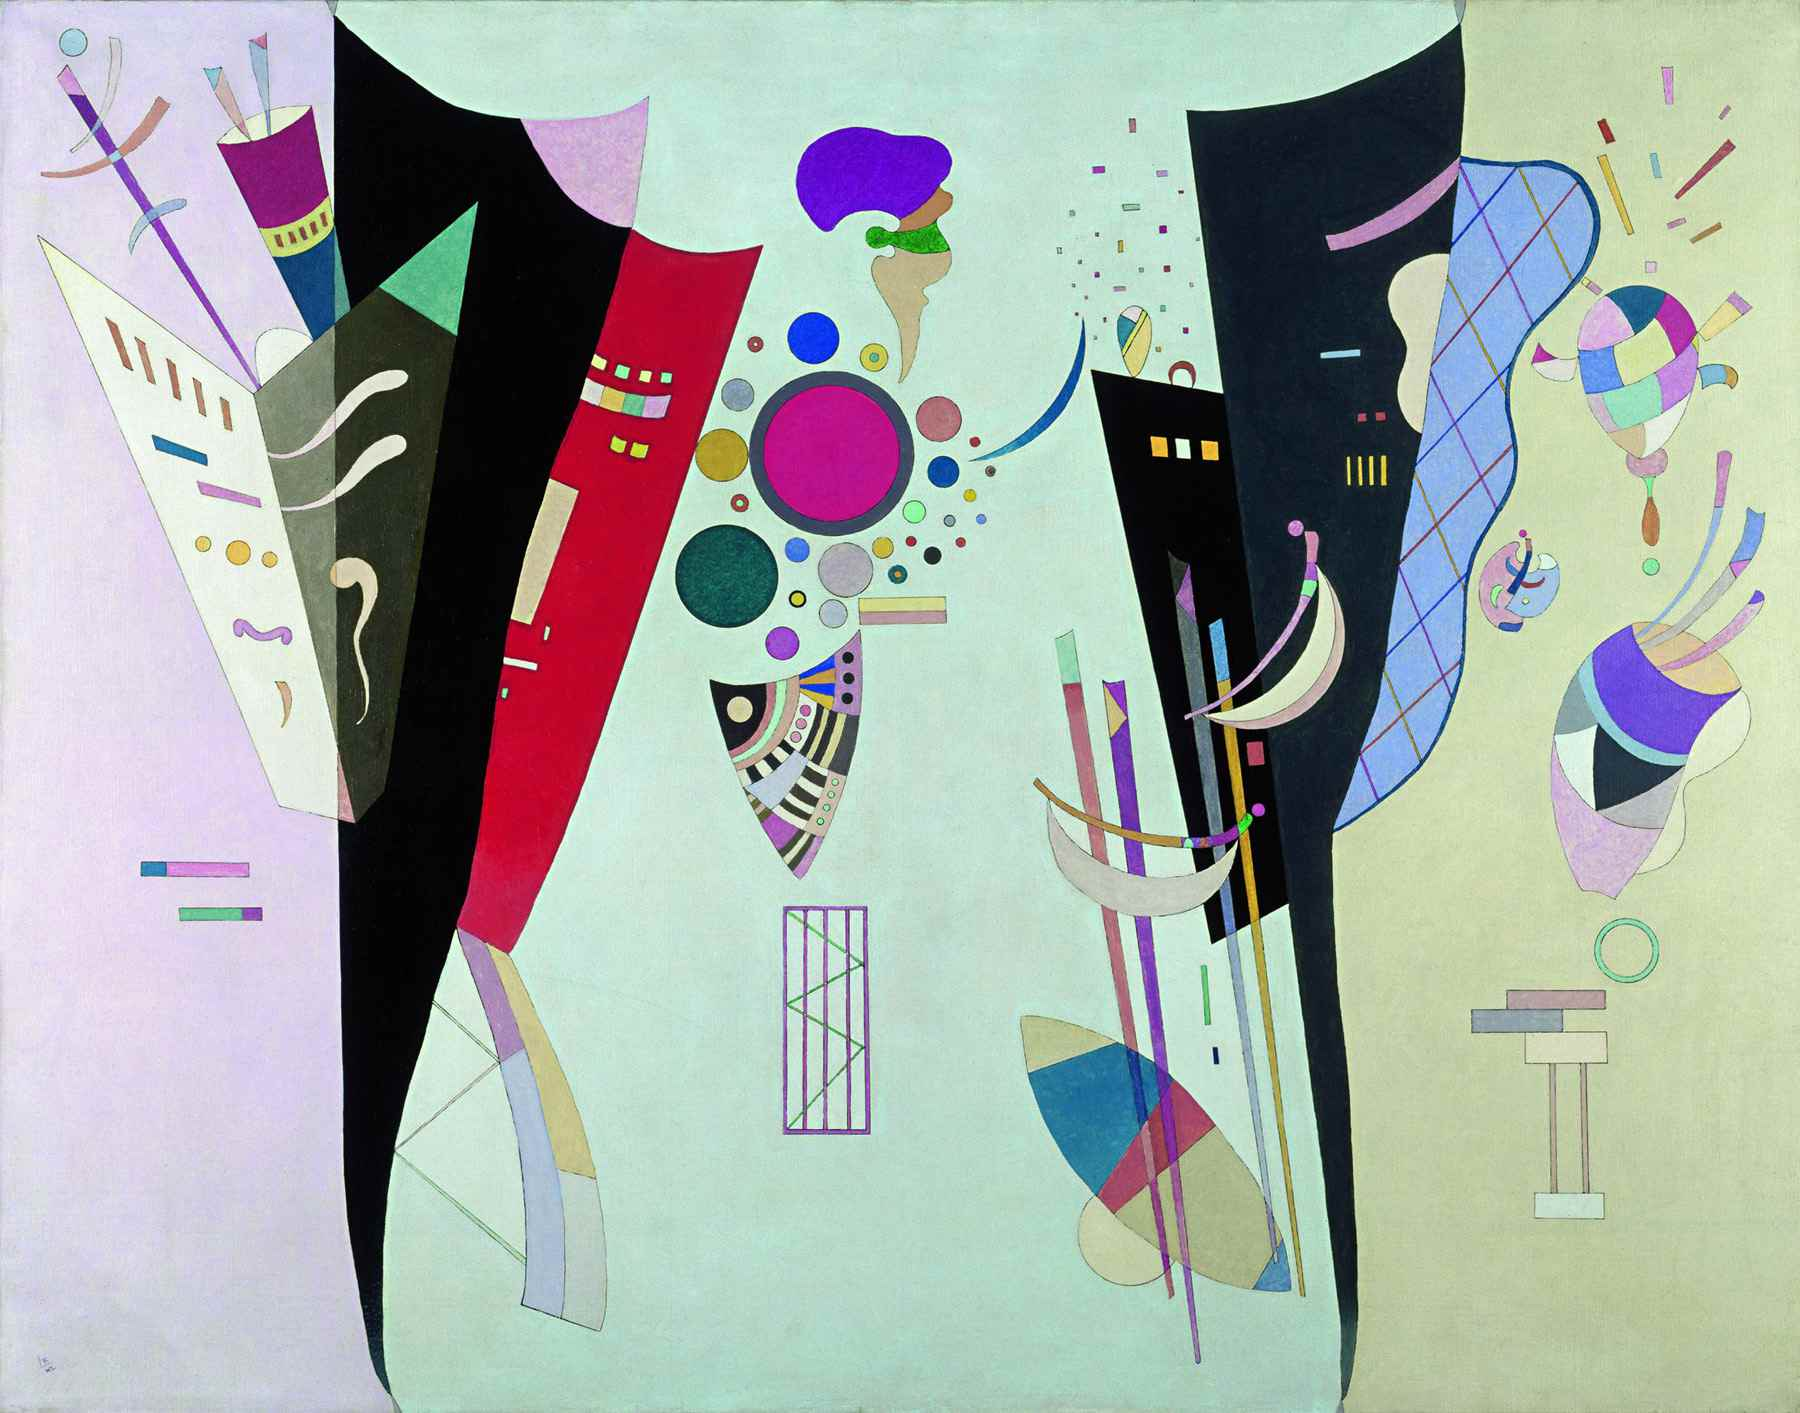 Wassily Kandinsky (Russian, 1866-1944) Wassily Kandinsky (Russian, 1866-1944). Reciprocal Accords (Accord Réciproque), 1942. Oil and lacquer on canvas. 44 7/8 x 57 7/16 in. (114 x 146 cm). Gift of Nina Kandinsky, 1976. Musée national d'art moderne, Centre Pompidou, Paris.